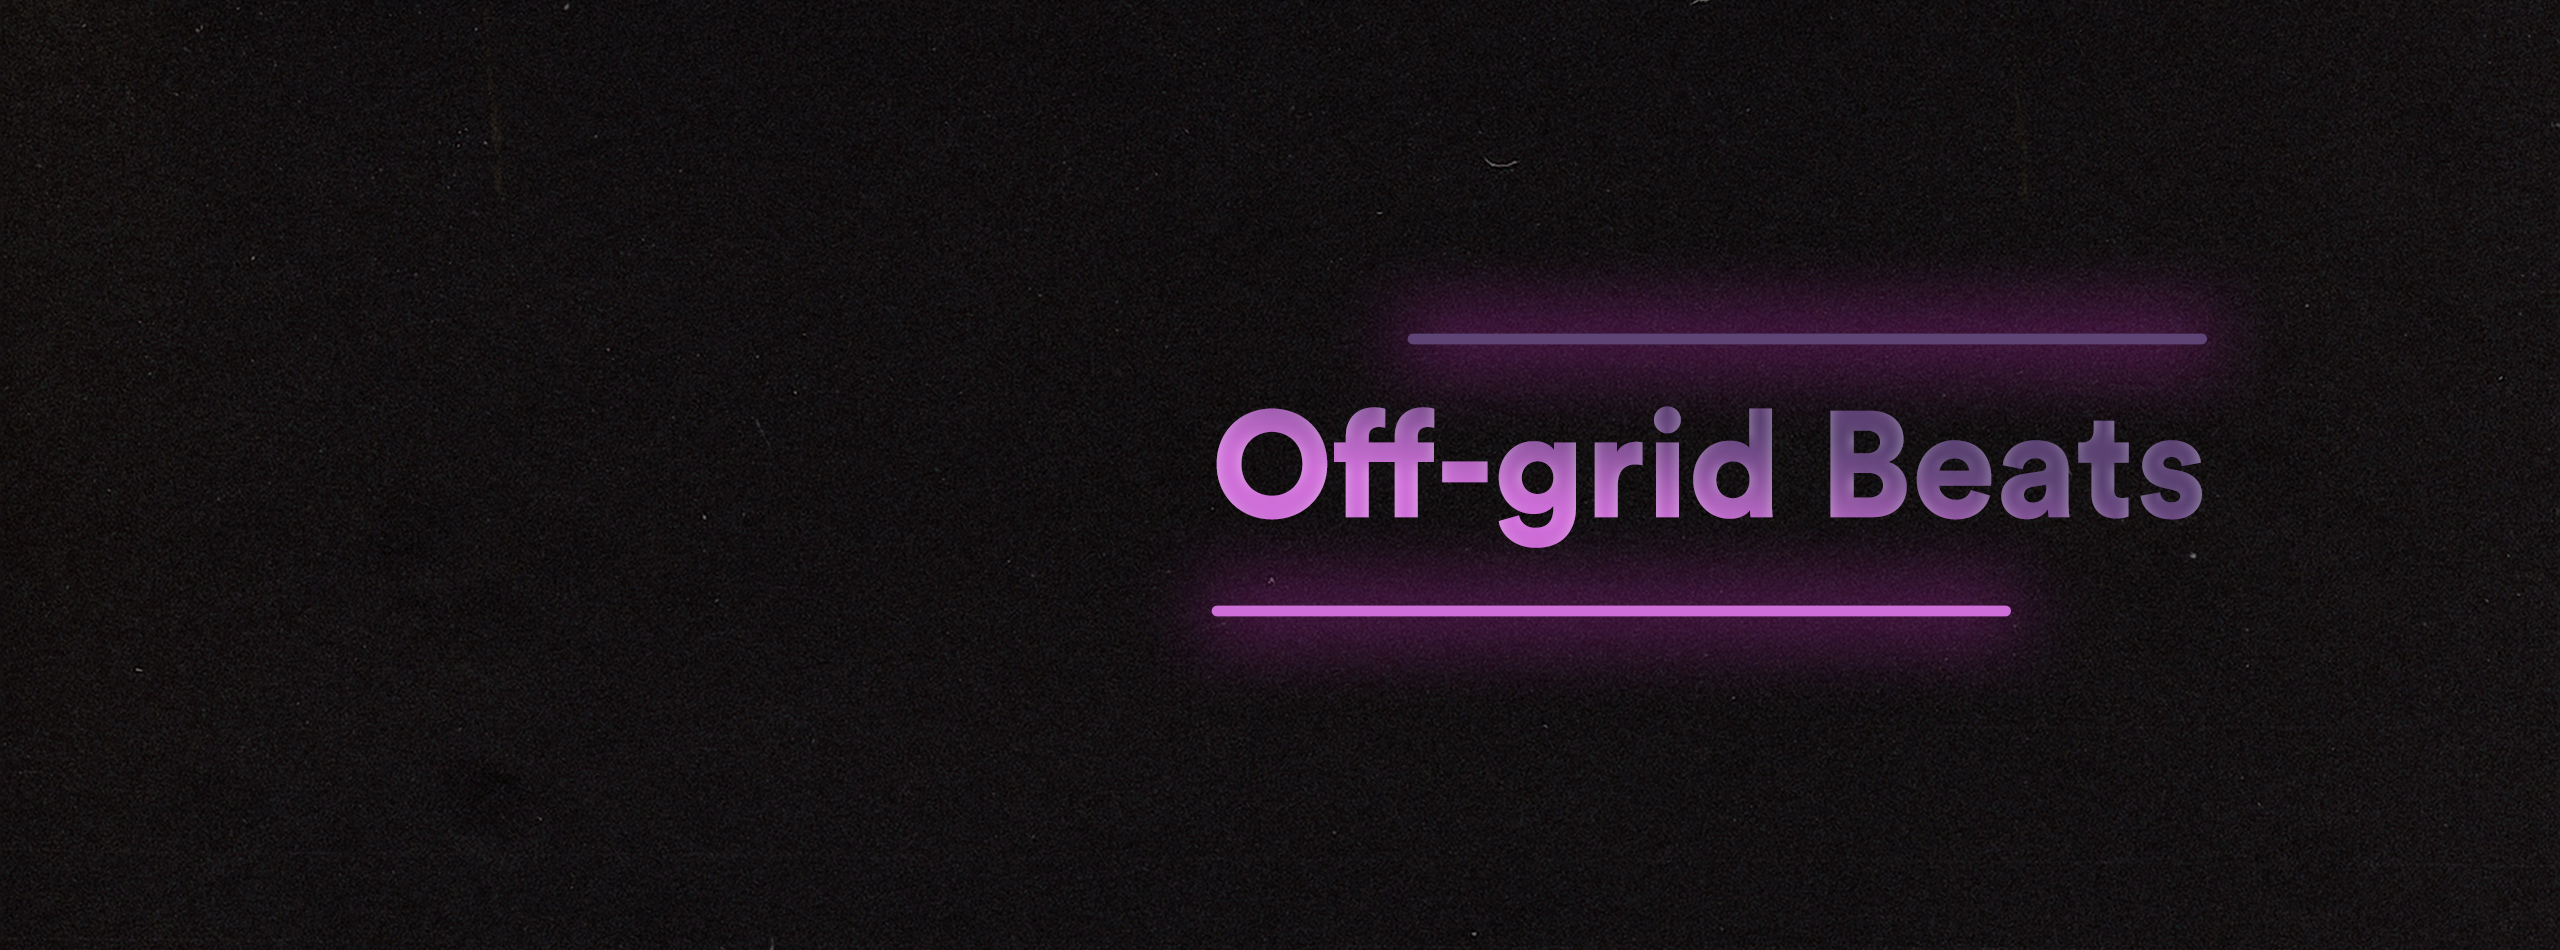 Novation Off-grid Beats